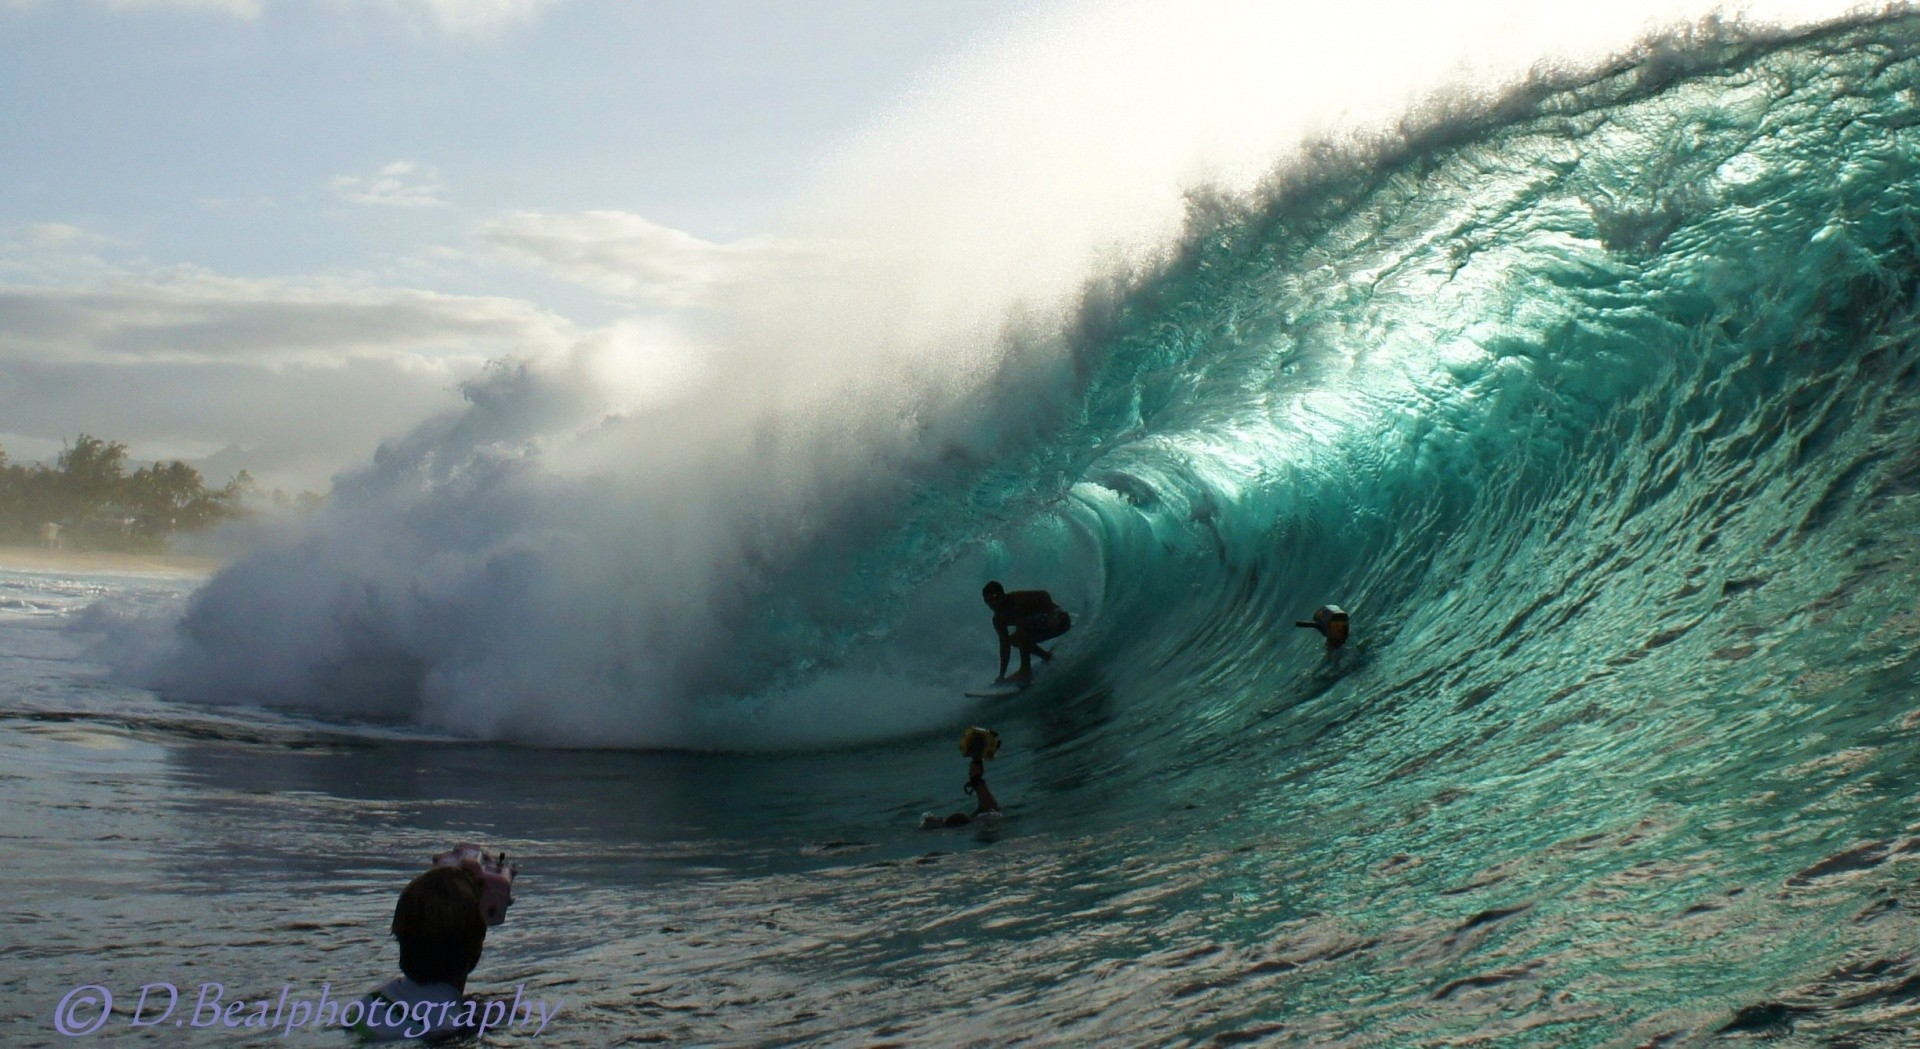 David Beal's photo of Pipeline & Backdoor